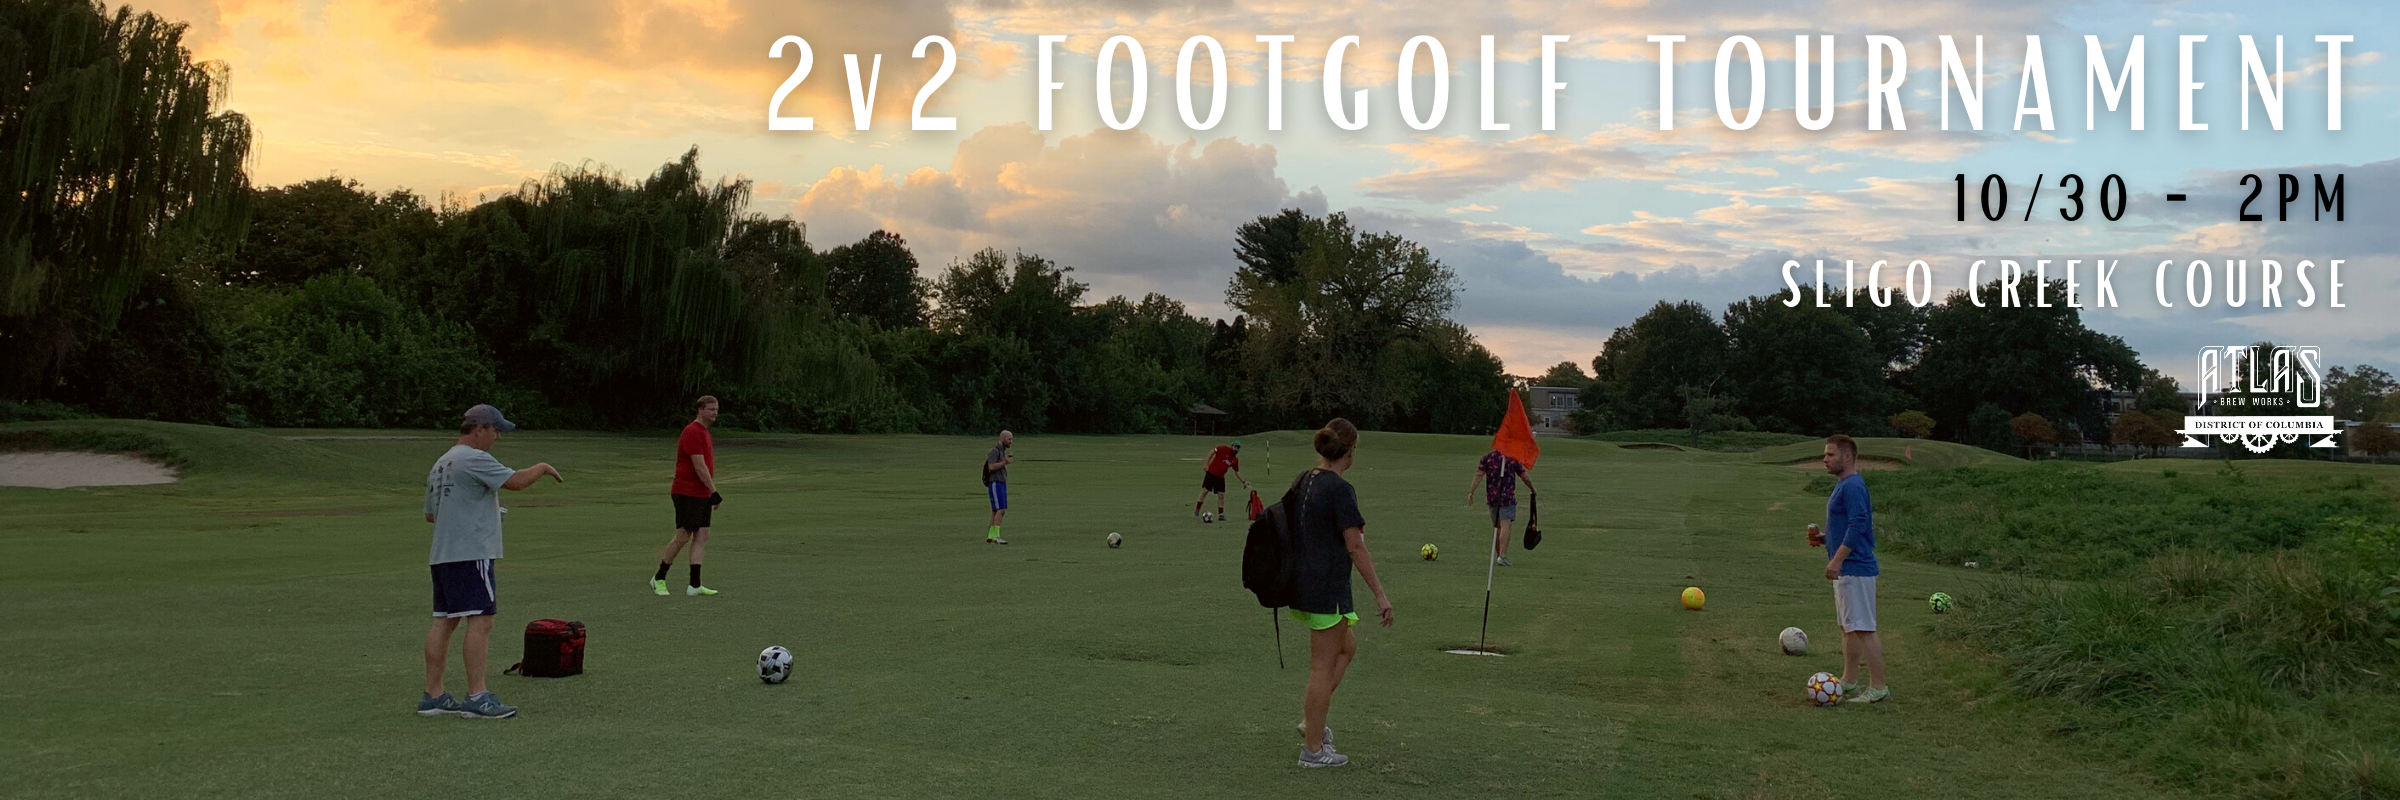 Saturday Afternoon Footgolf Tournament